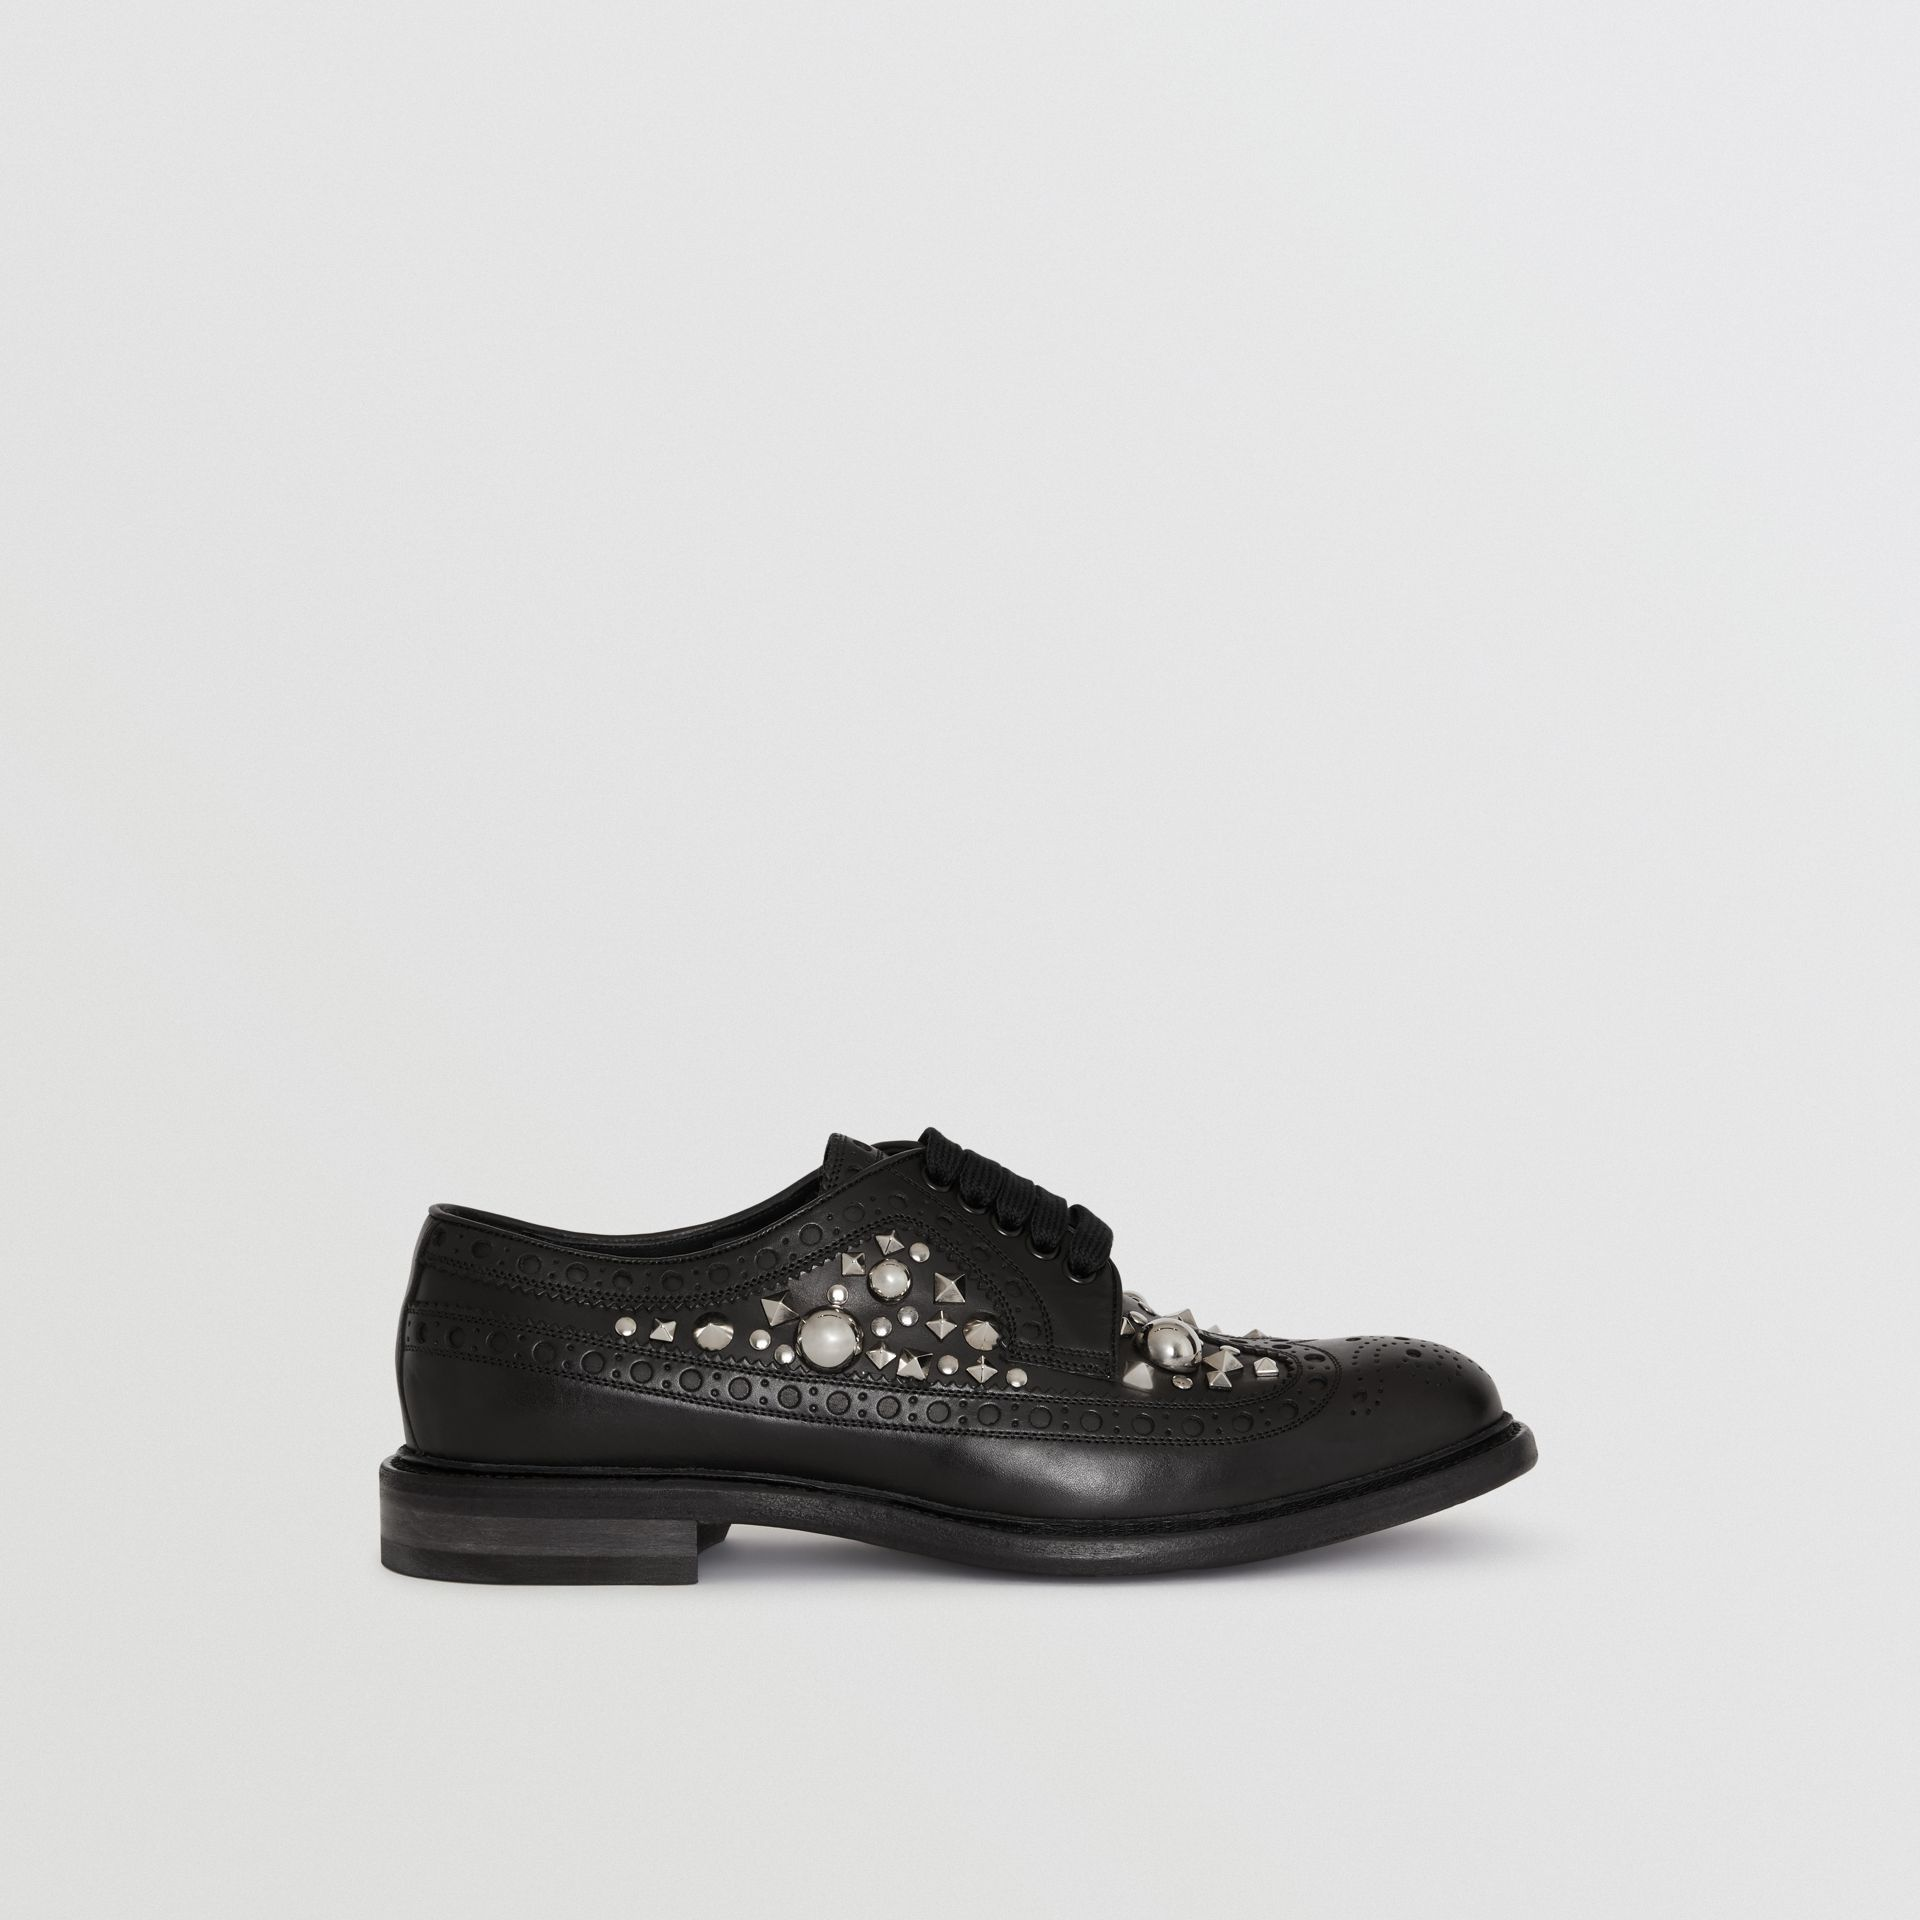 Stud Detail Leather Brogues in Black - Men | Burberry - gallery image 4